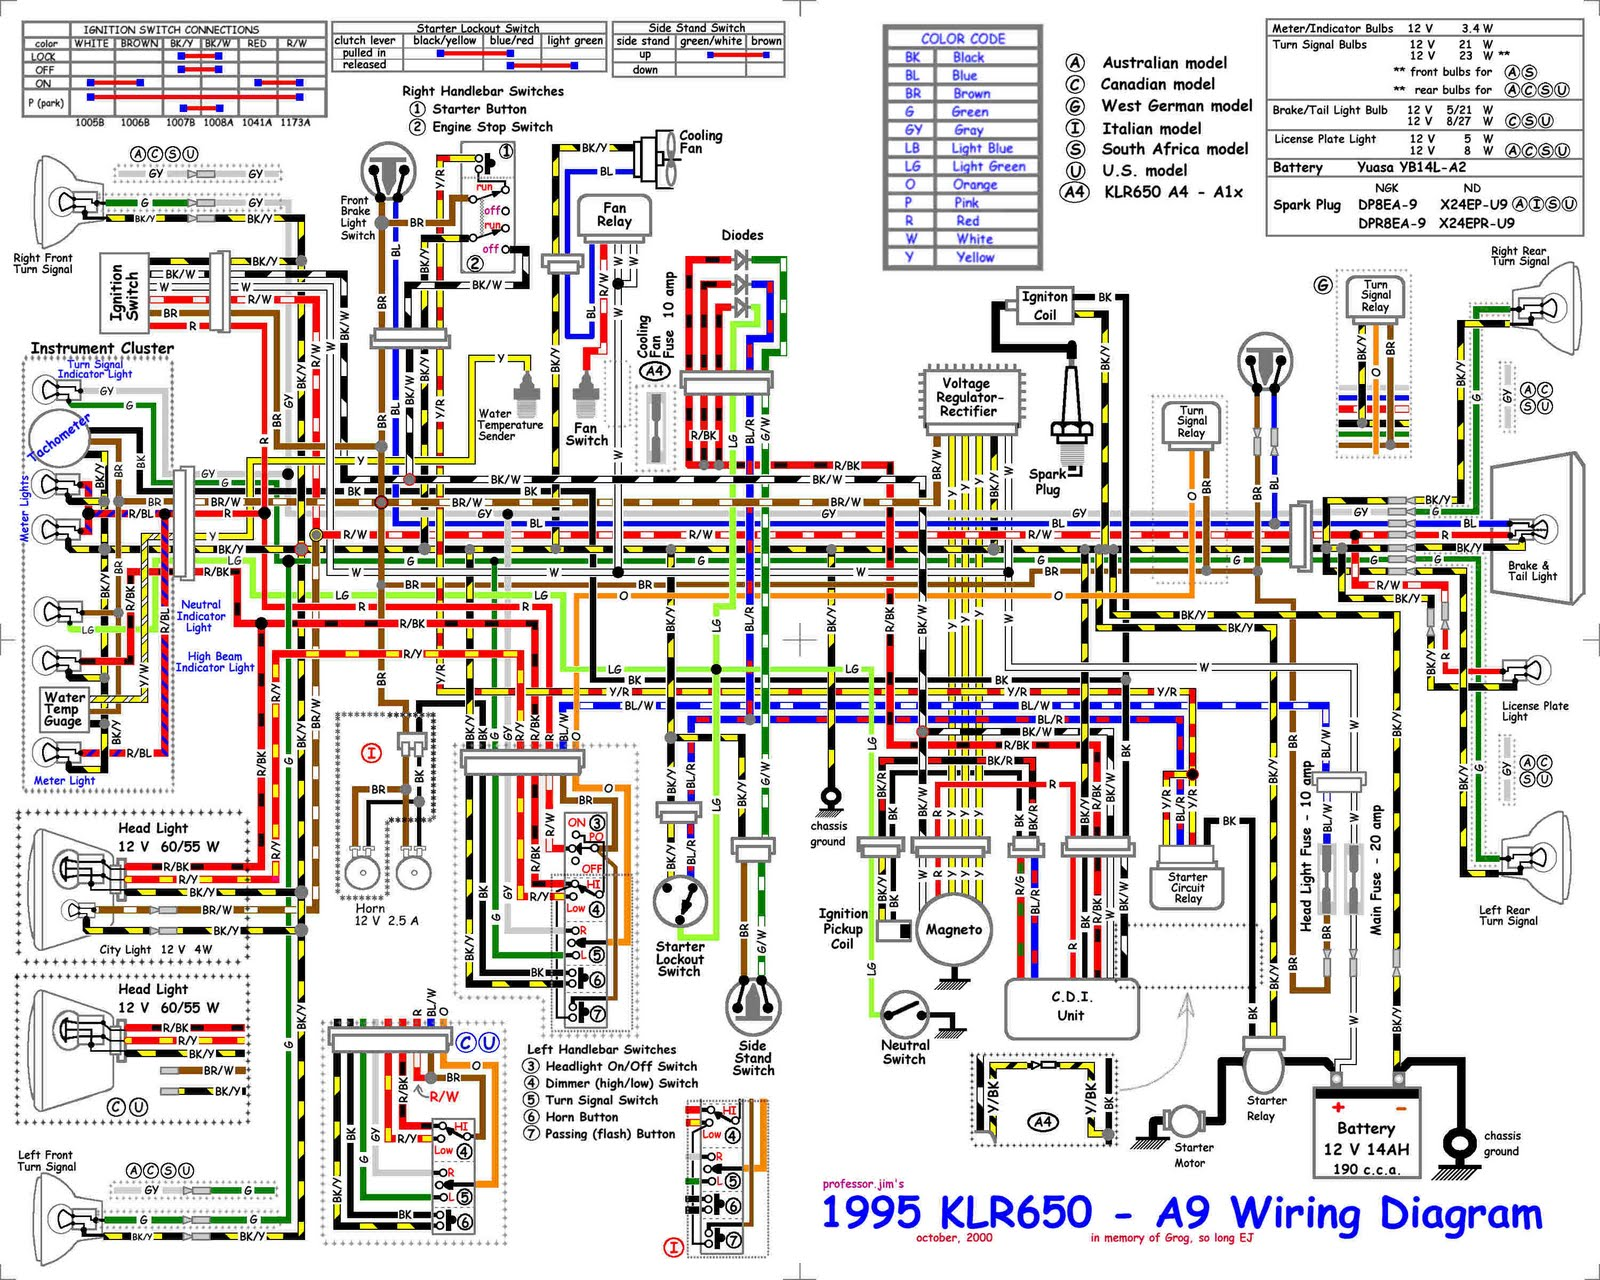 Vt600 Wiring Diagram 59362 besides P 0900c15280087c46 further 68ef308d7ad7b2abaa01c3cfb3b77063 together with Wiring Diagram For 1986 Jeep Cj also Relay Help 151839. on turn signal wiring diagram for willys jeep